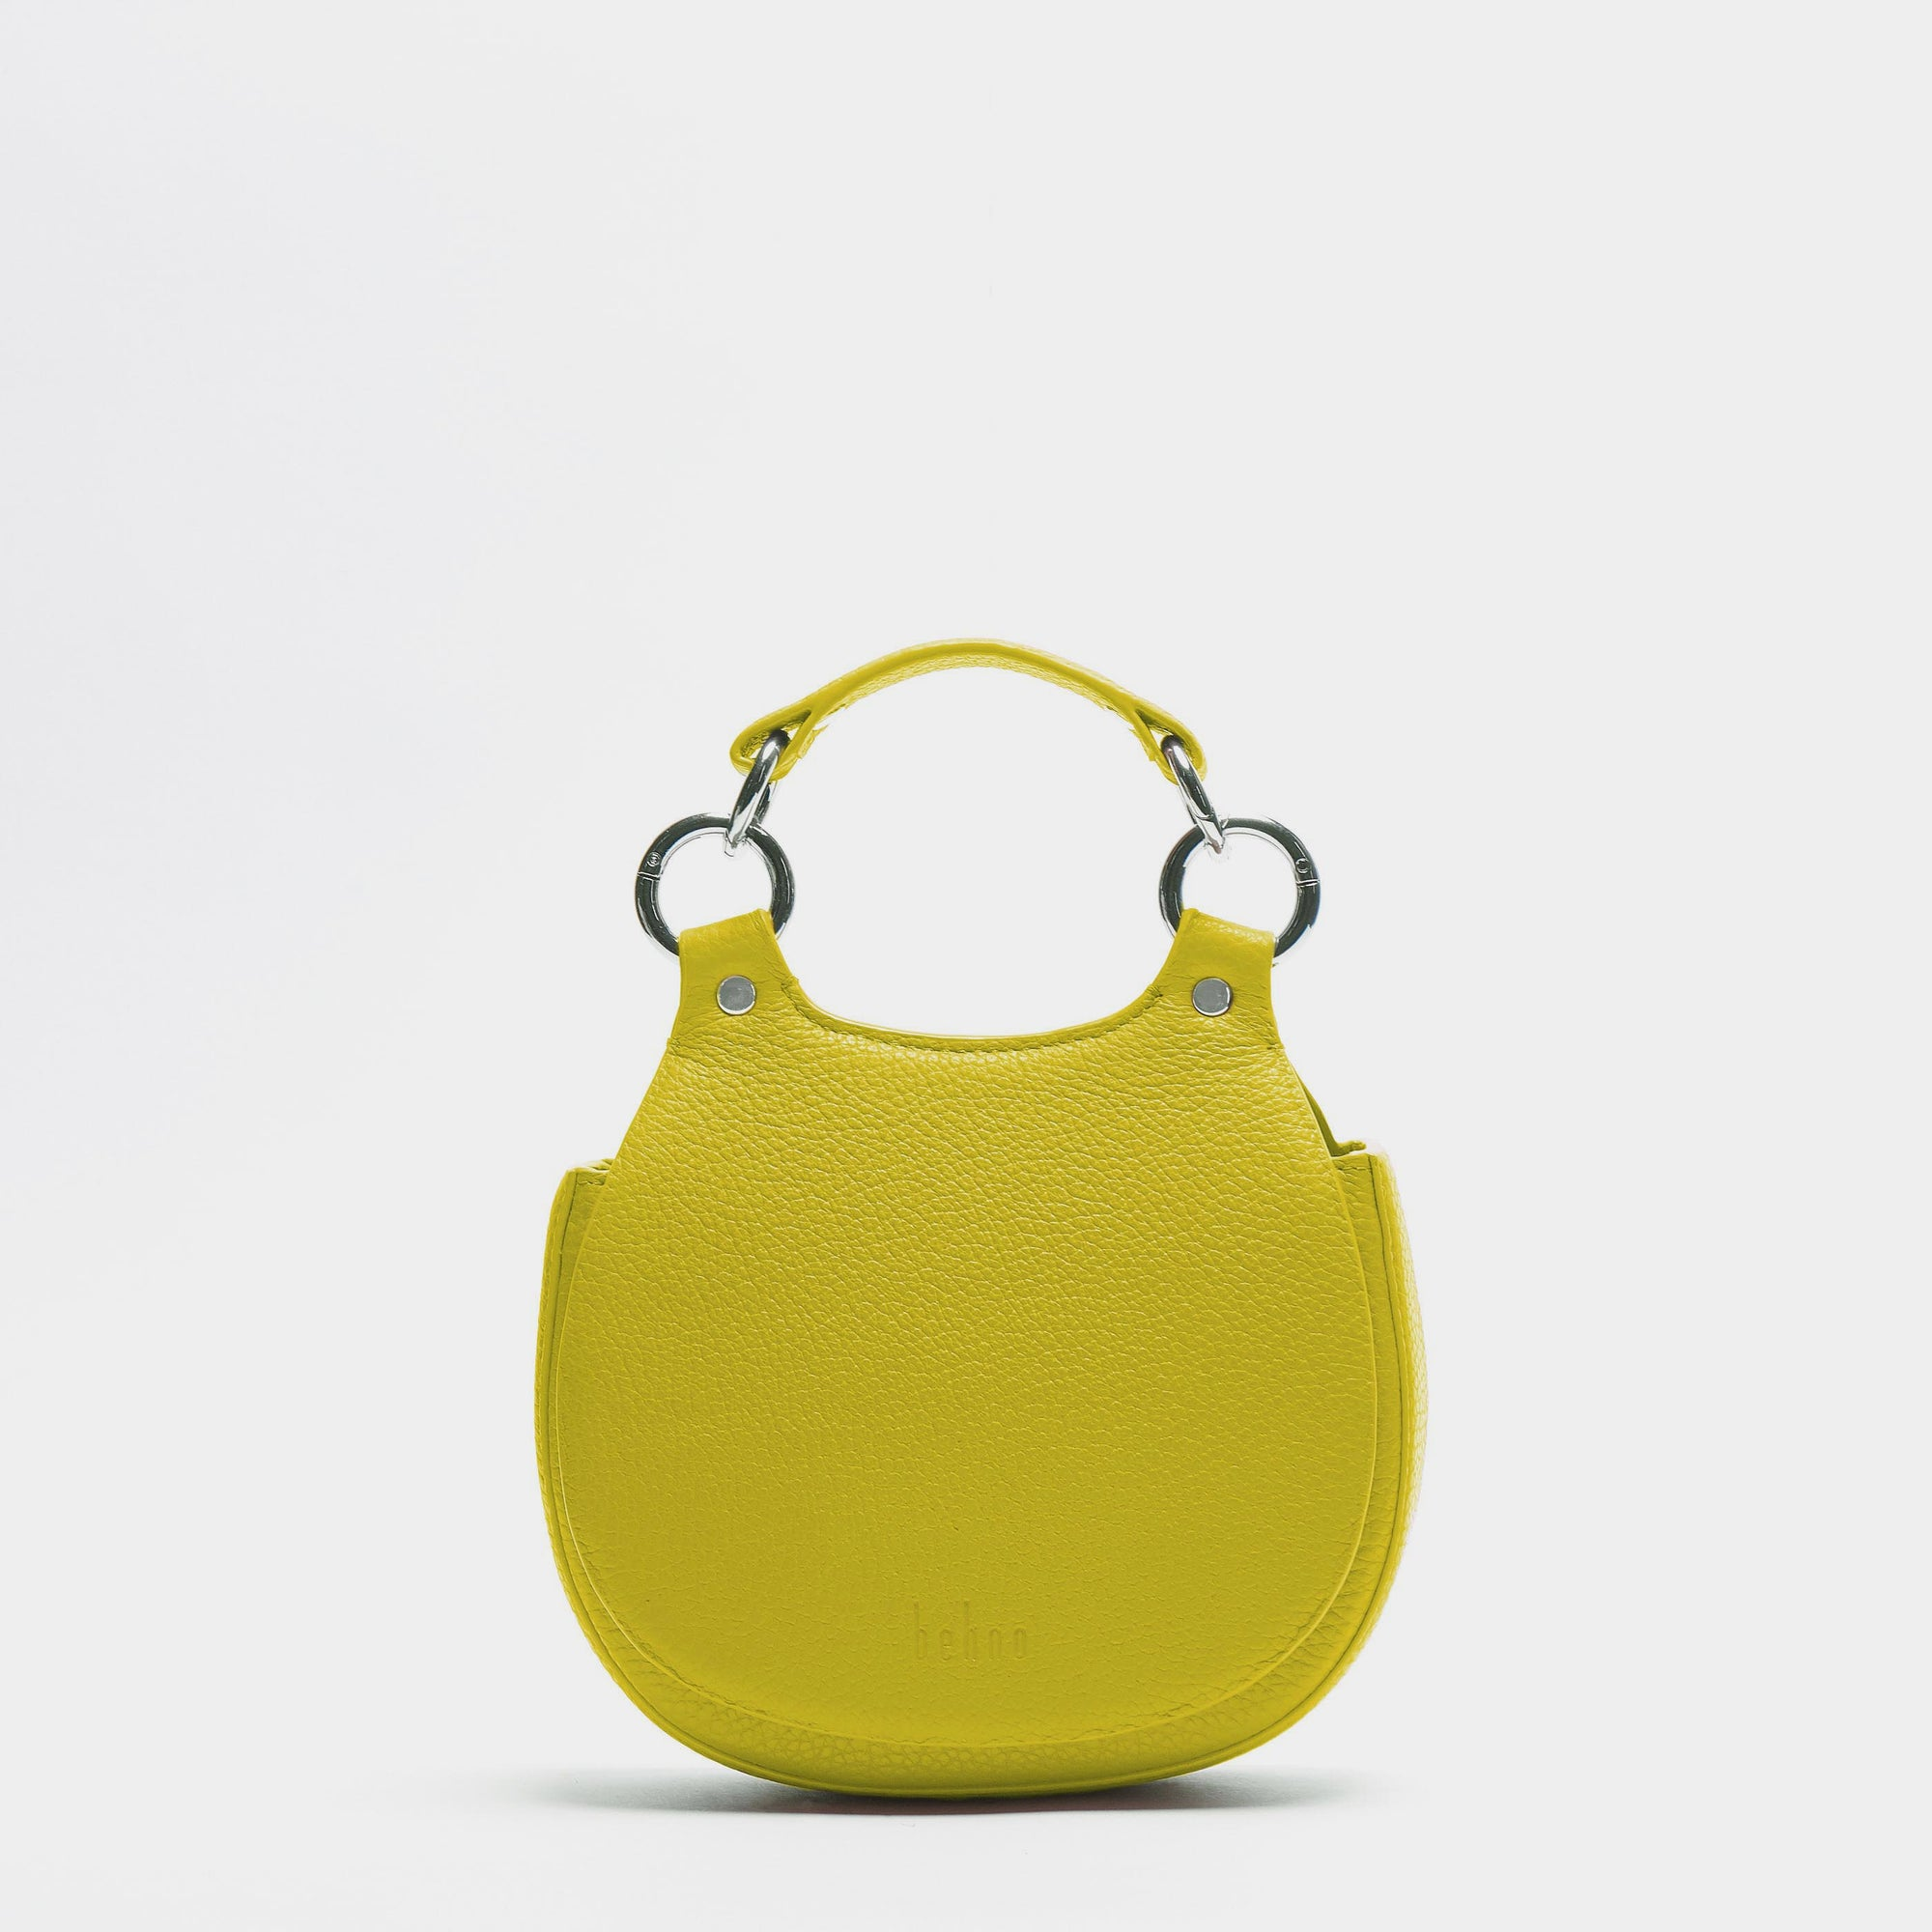 TILDA MINI SADDLE BAG PEBBLE YELLOW